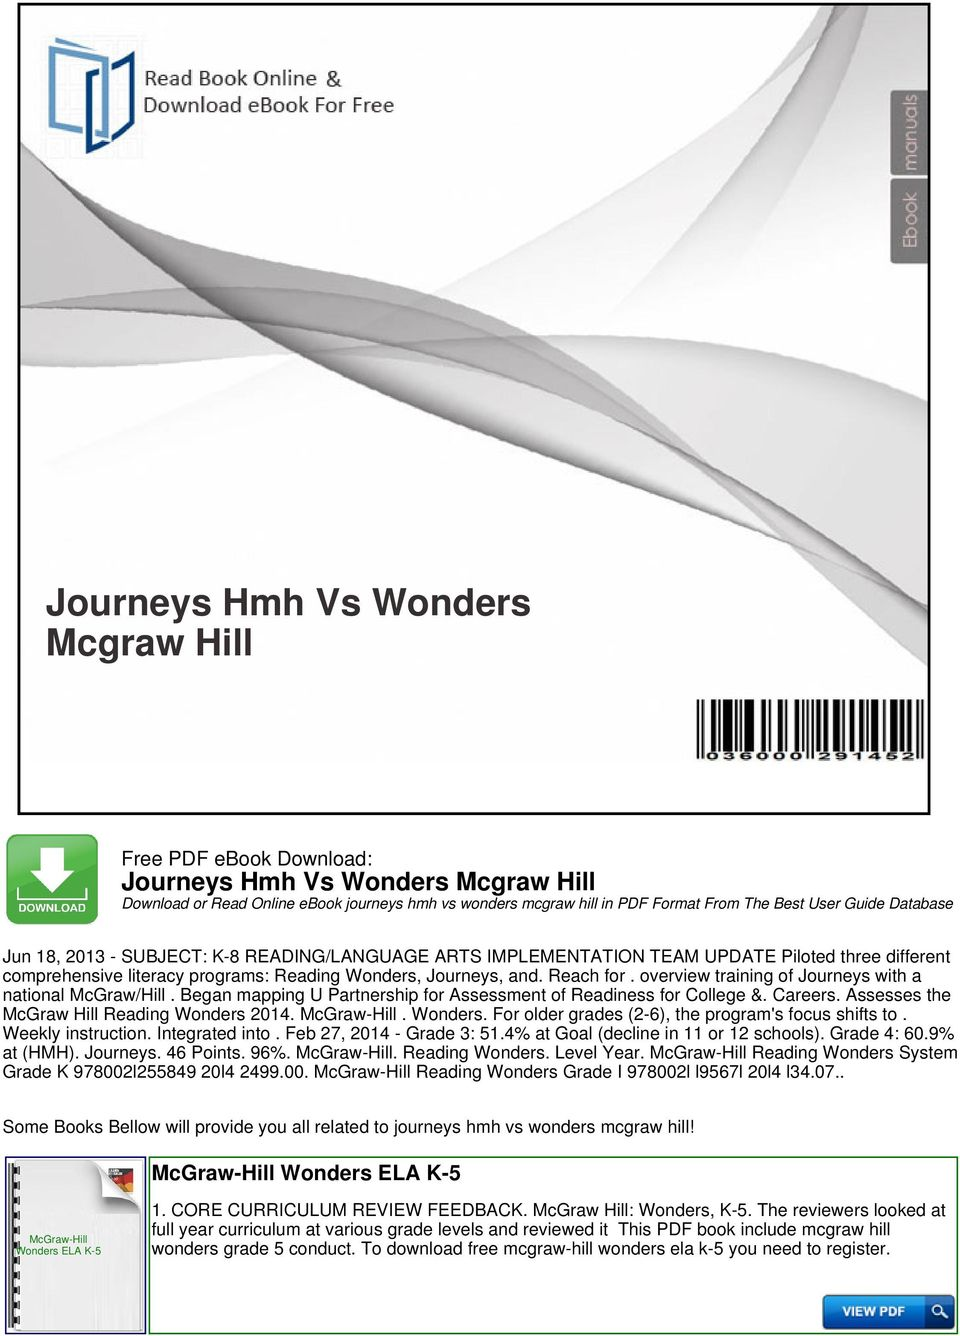 Journeys hmh vs wonders mcgraw hill pdf overview training of journeys with a national mcgrawhill began mapping u partnership for fandeluxe